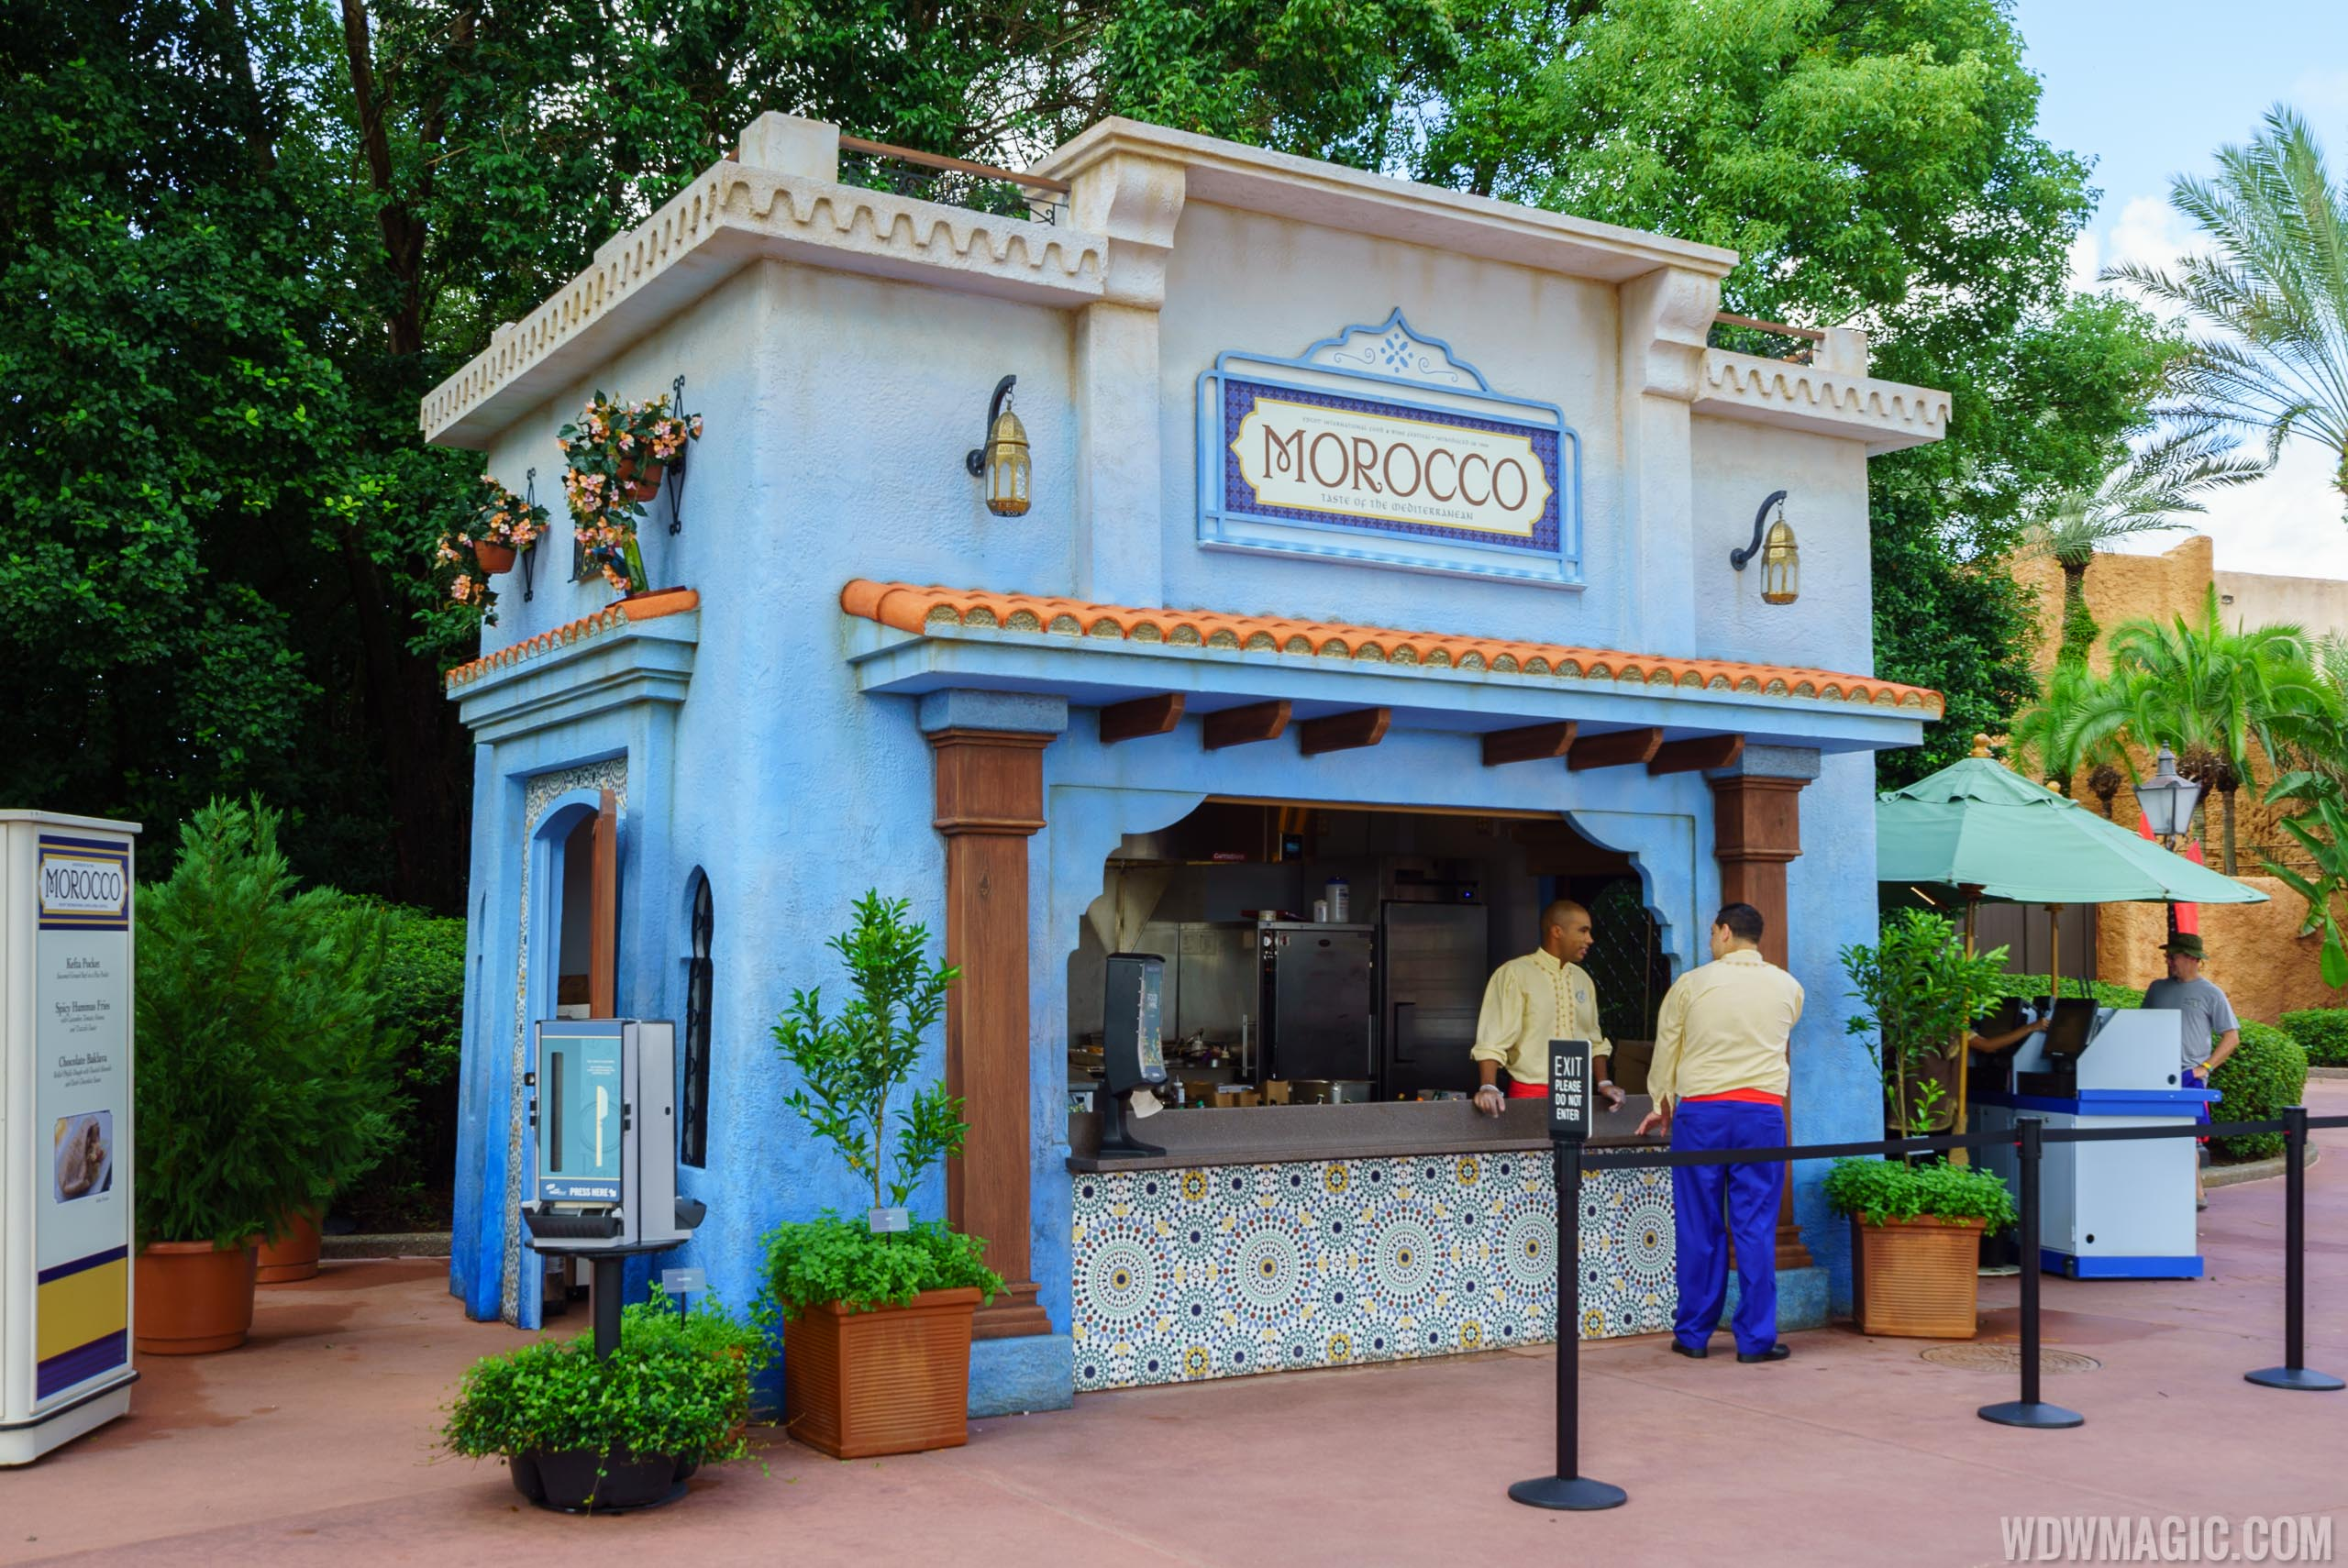 2016 Epcot Food and Wine Festival - Morocco Kiosk